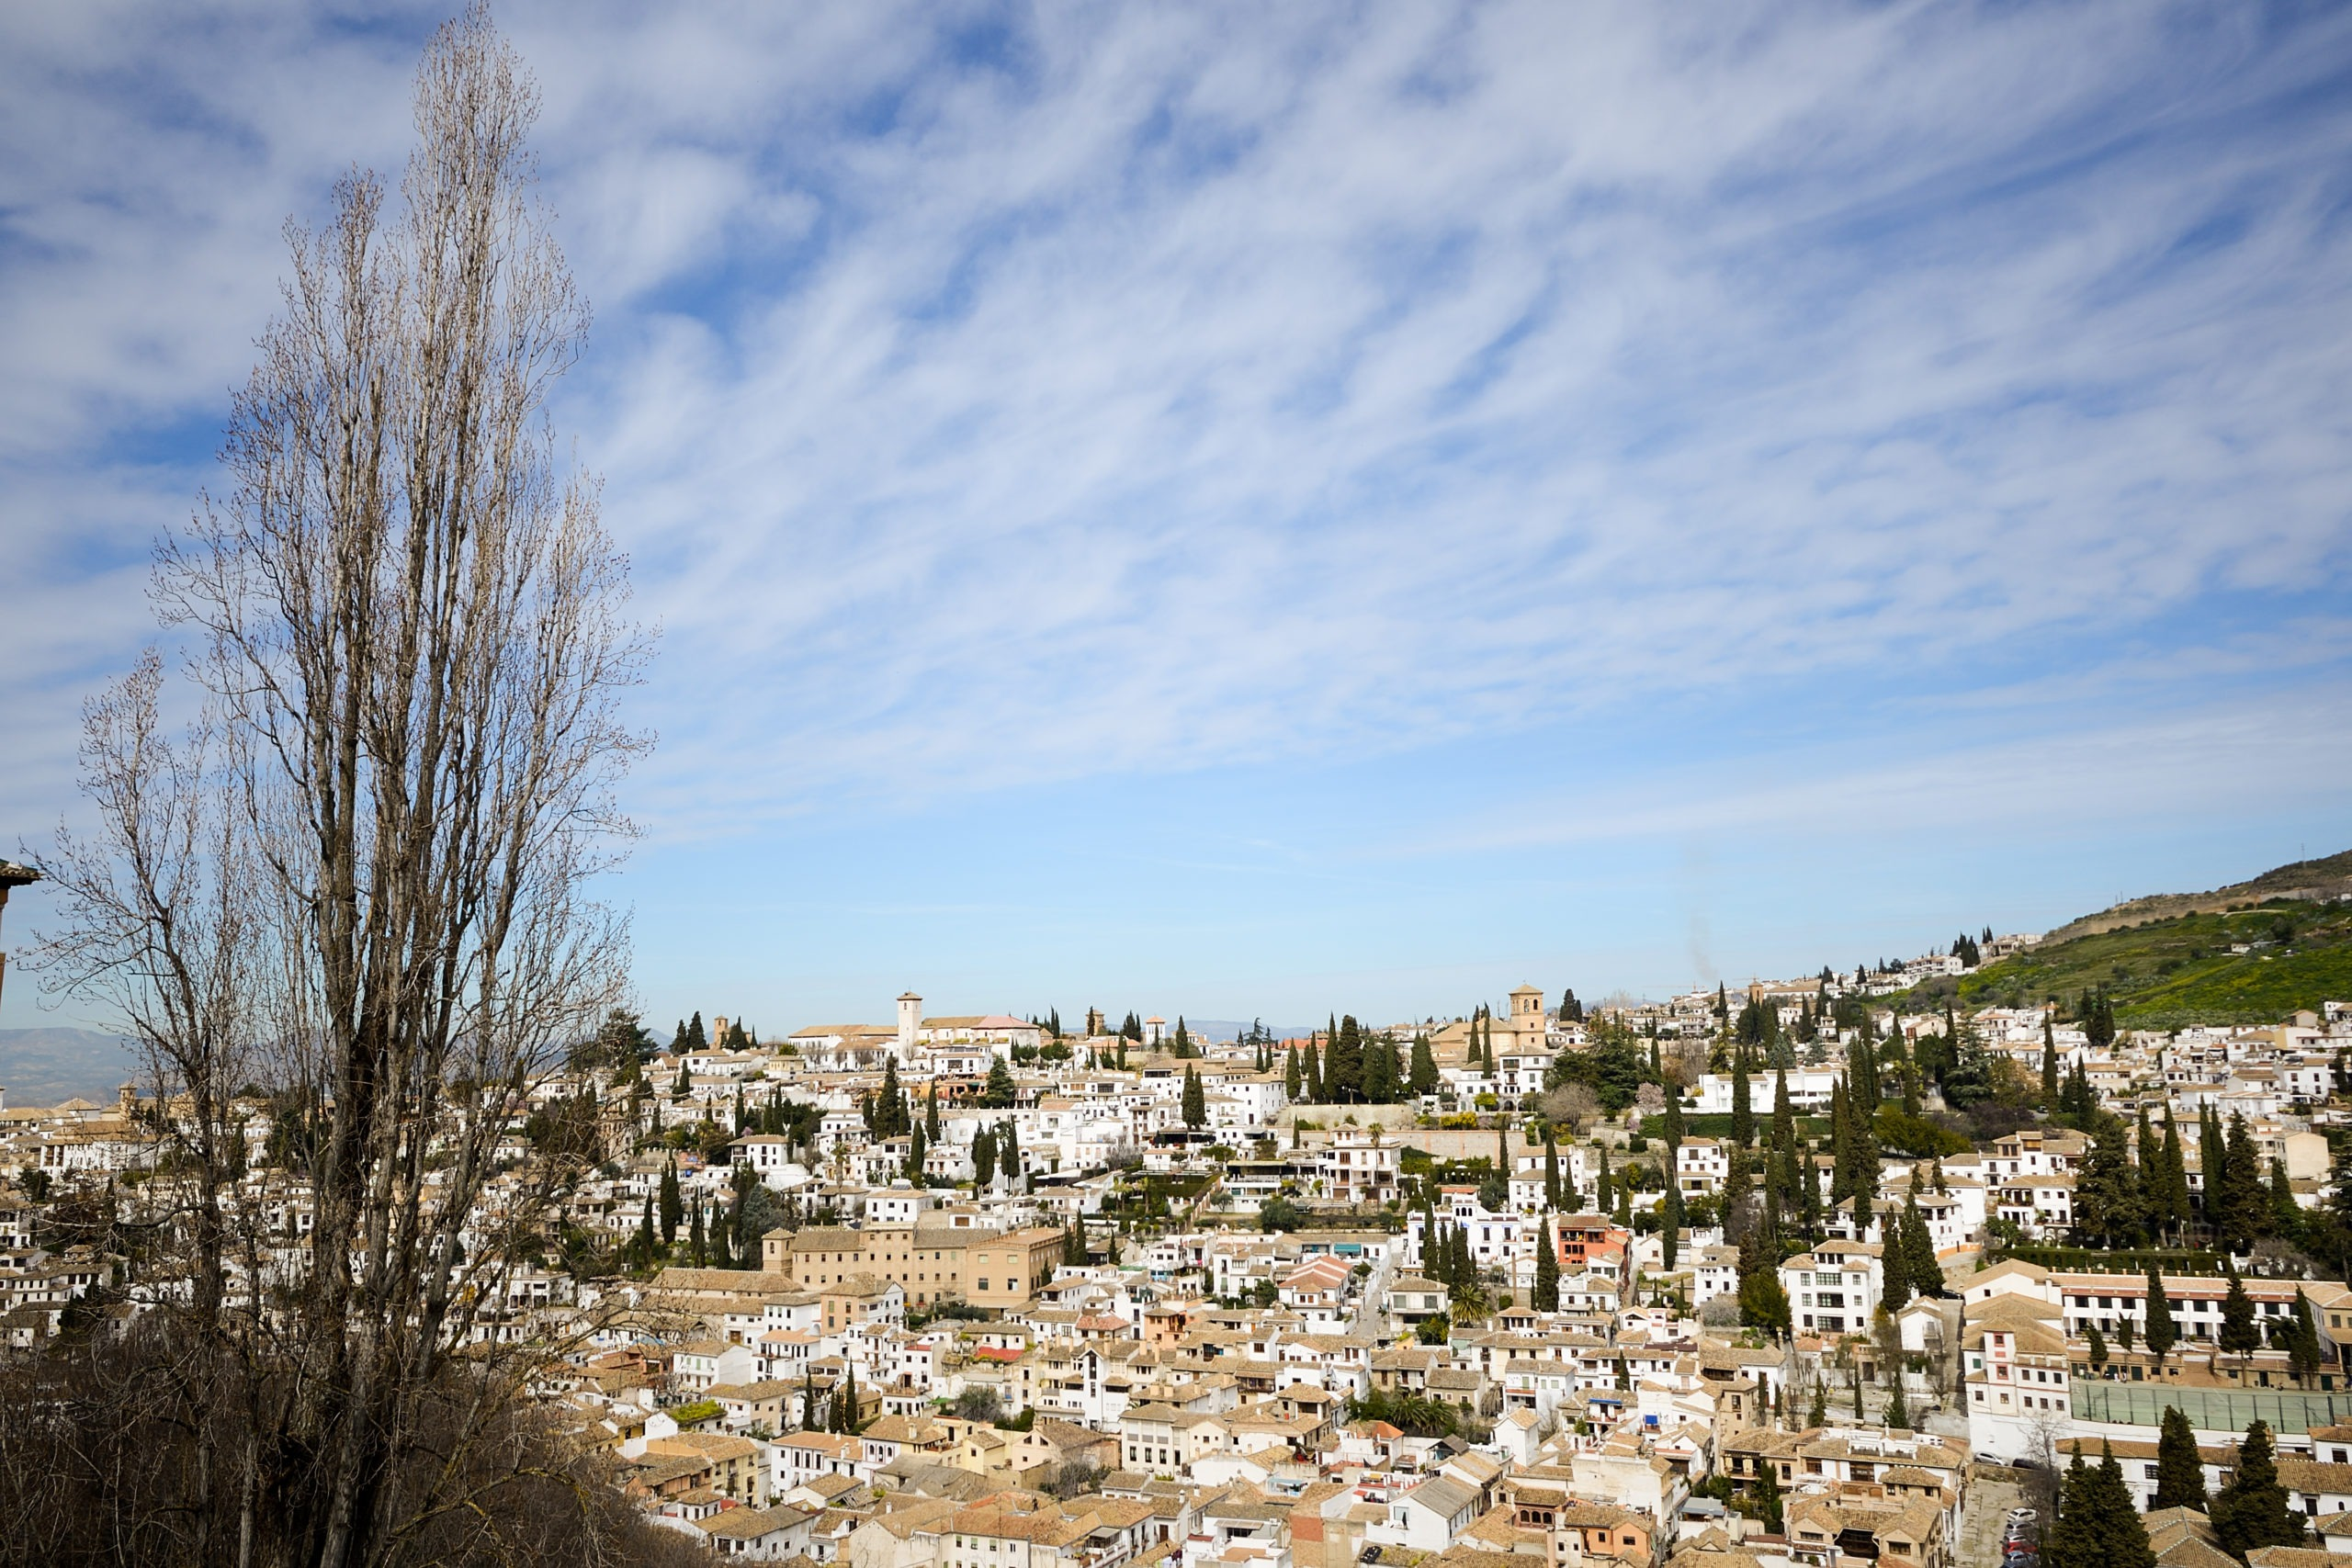 Albaicin seen from the Alhambra in Granada, Andalusia, Spain